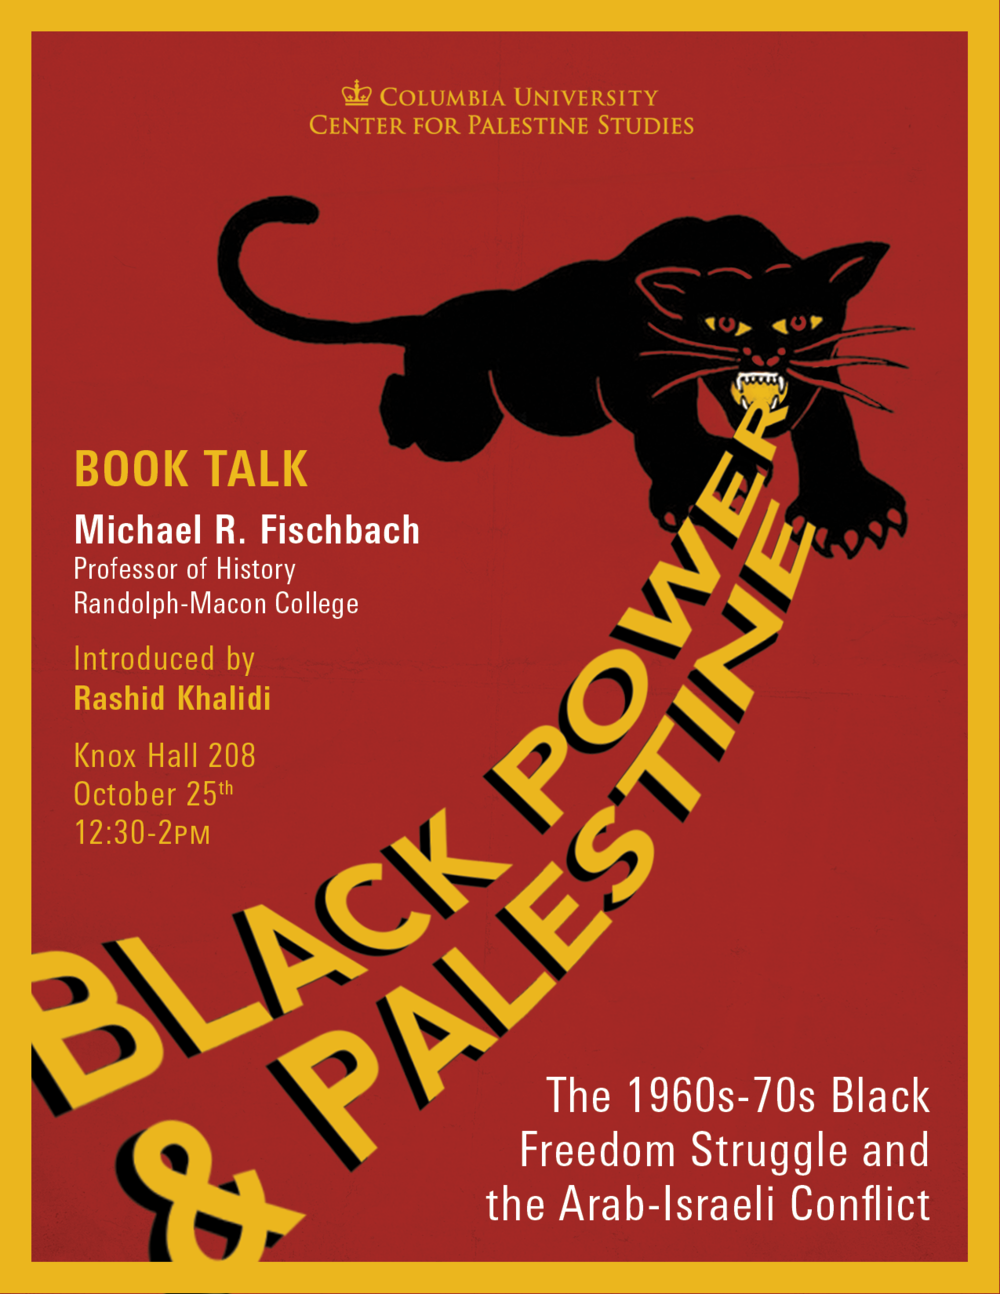 Black Power and Palestine: The 1960s-70s Black Freedom Struggle and the Arab-Israeli Conflict